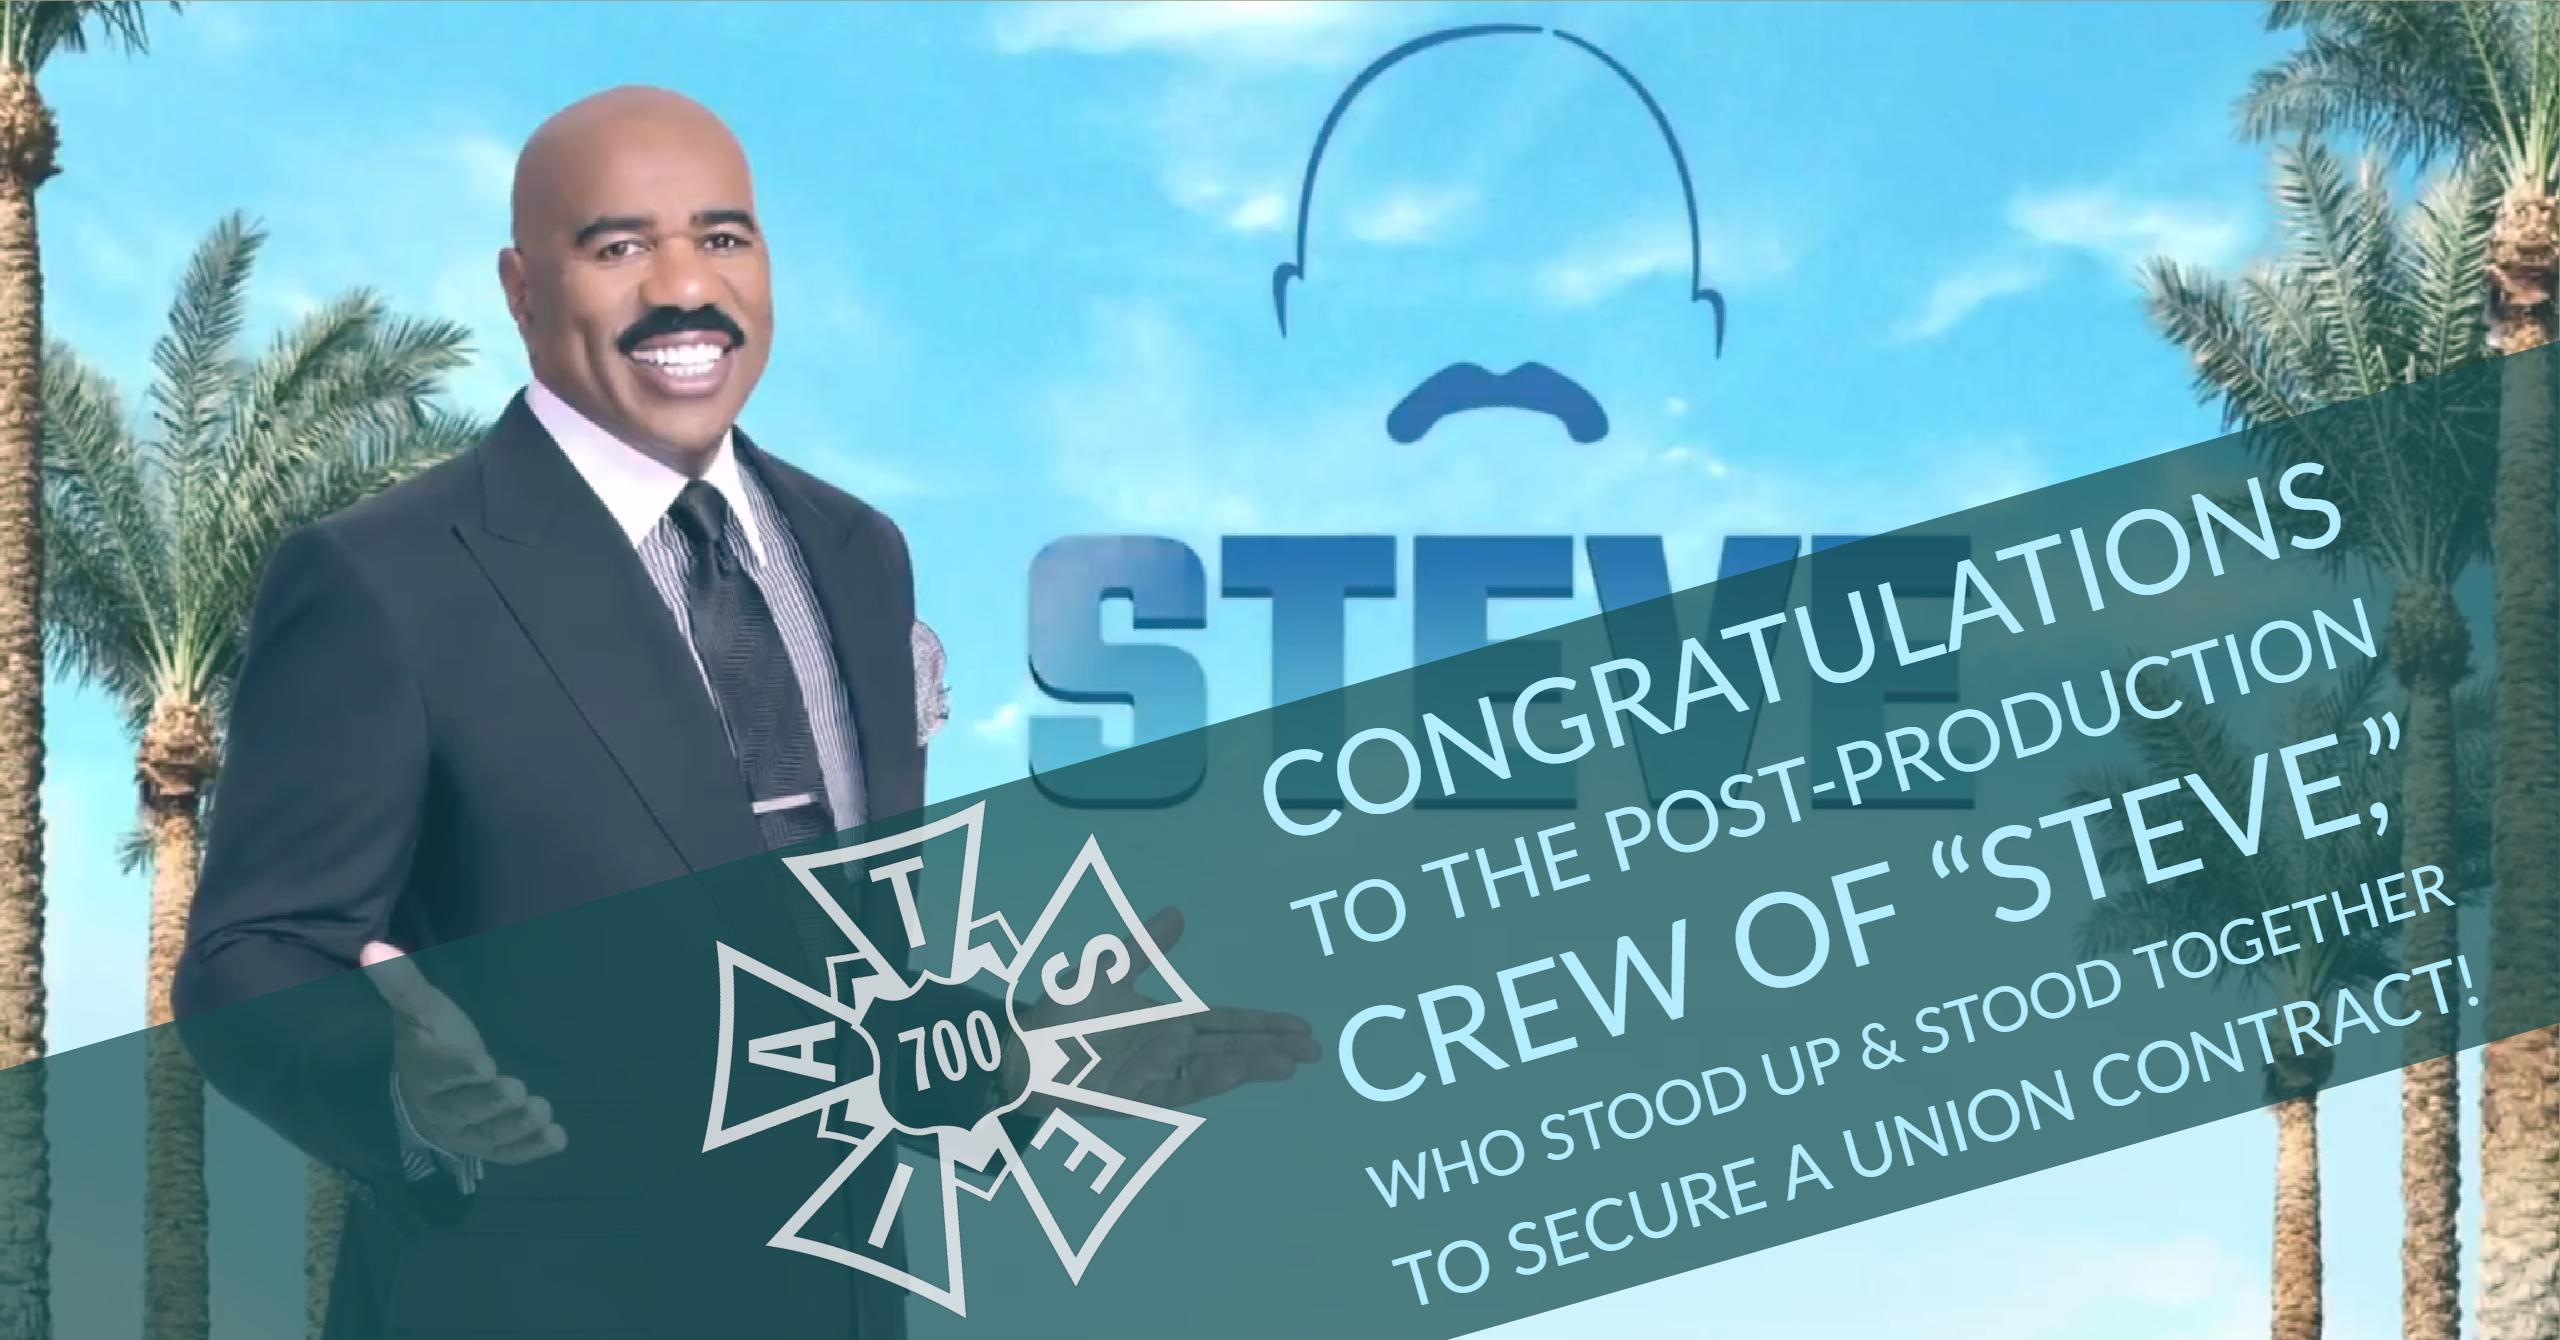 """Steve"" Post Crew Wins Union Contract!"